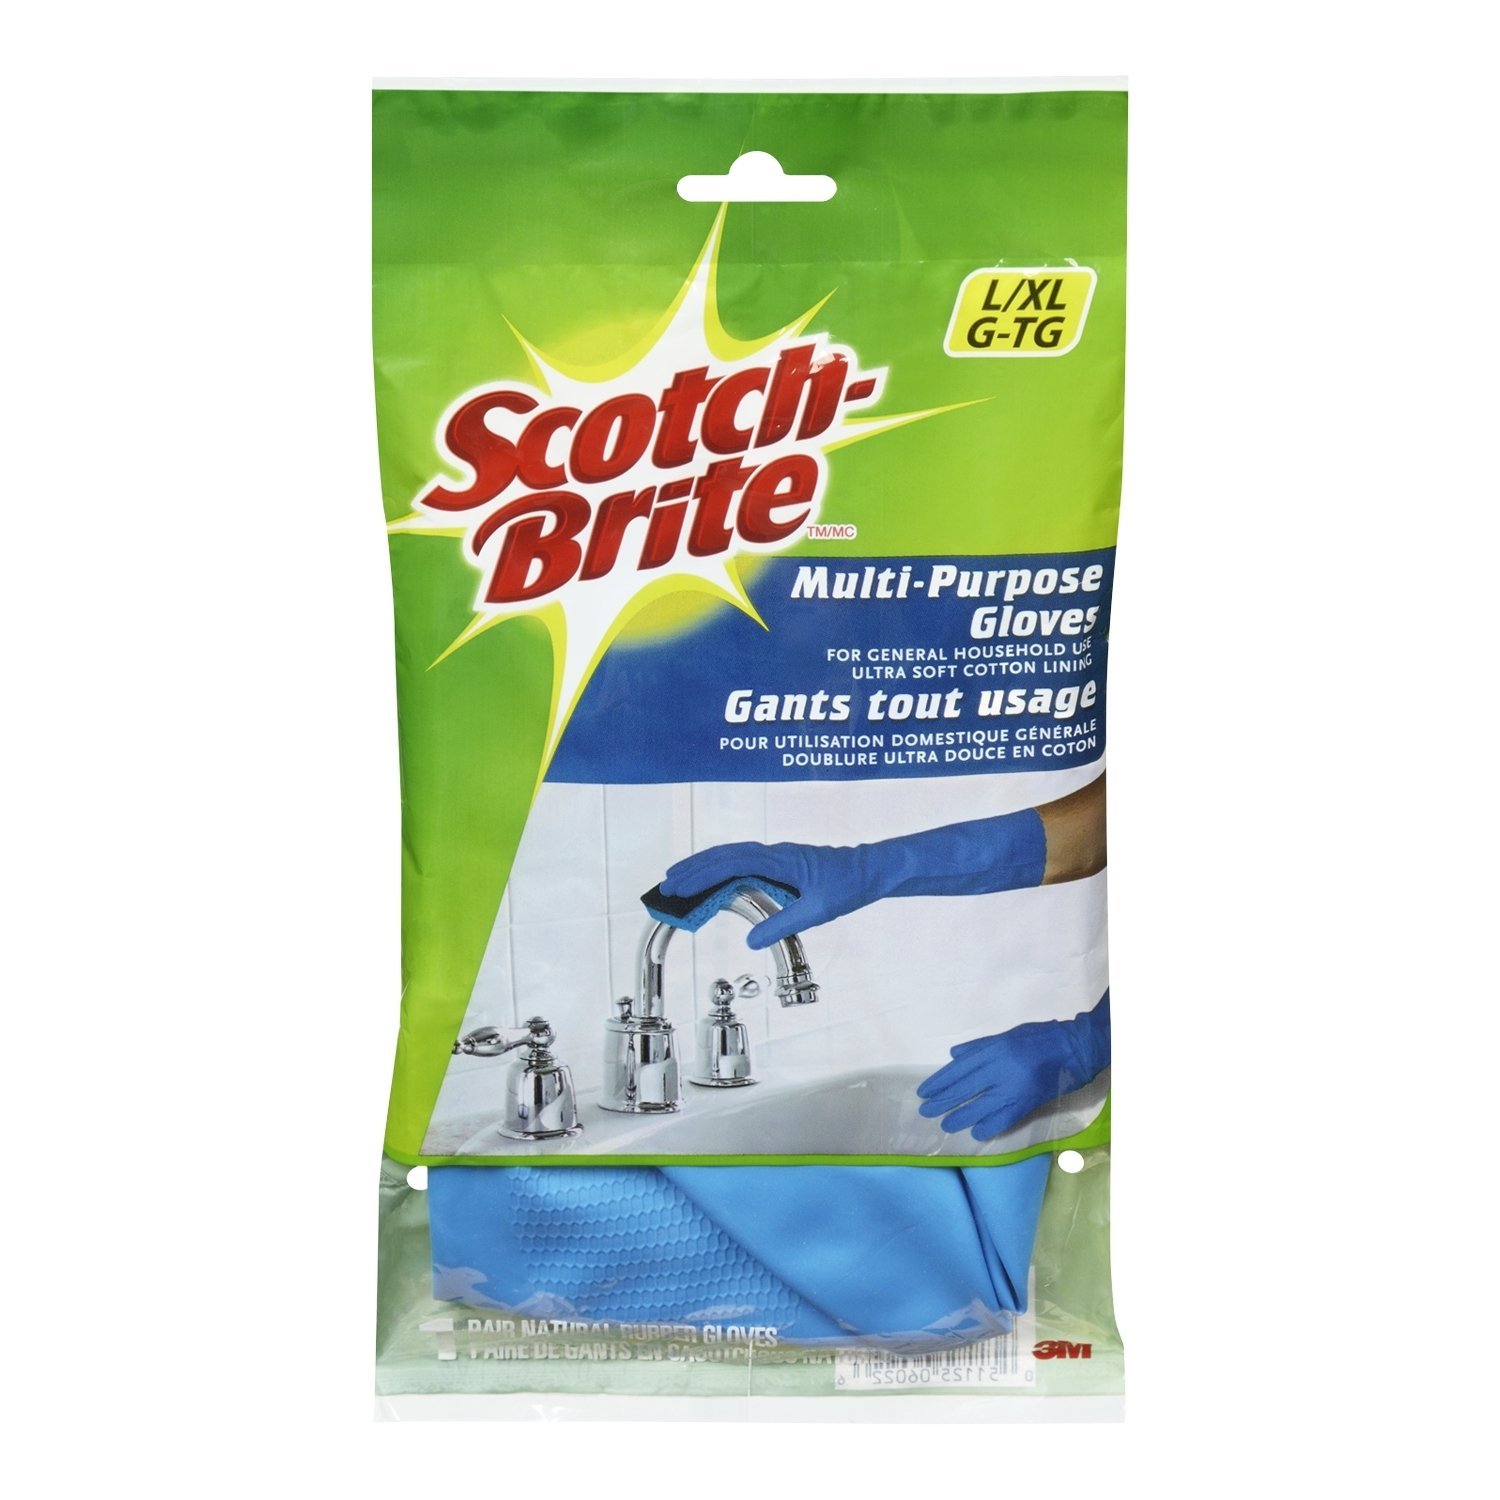 Scotch-Brite Multi Purpose Gloves, Large/X-Large